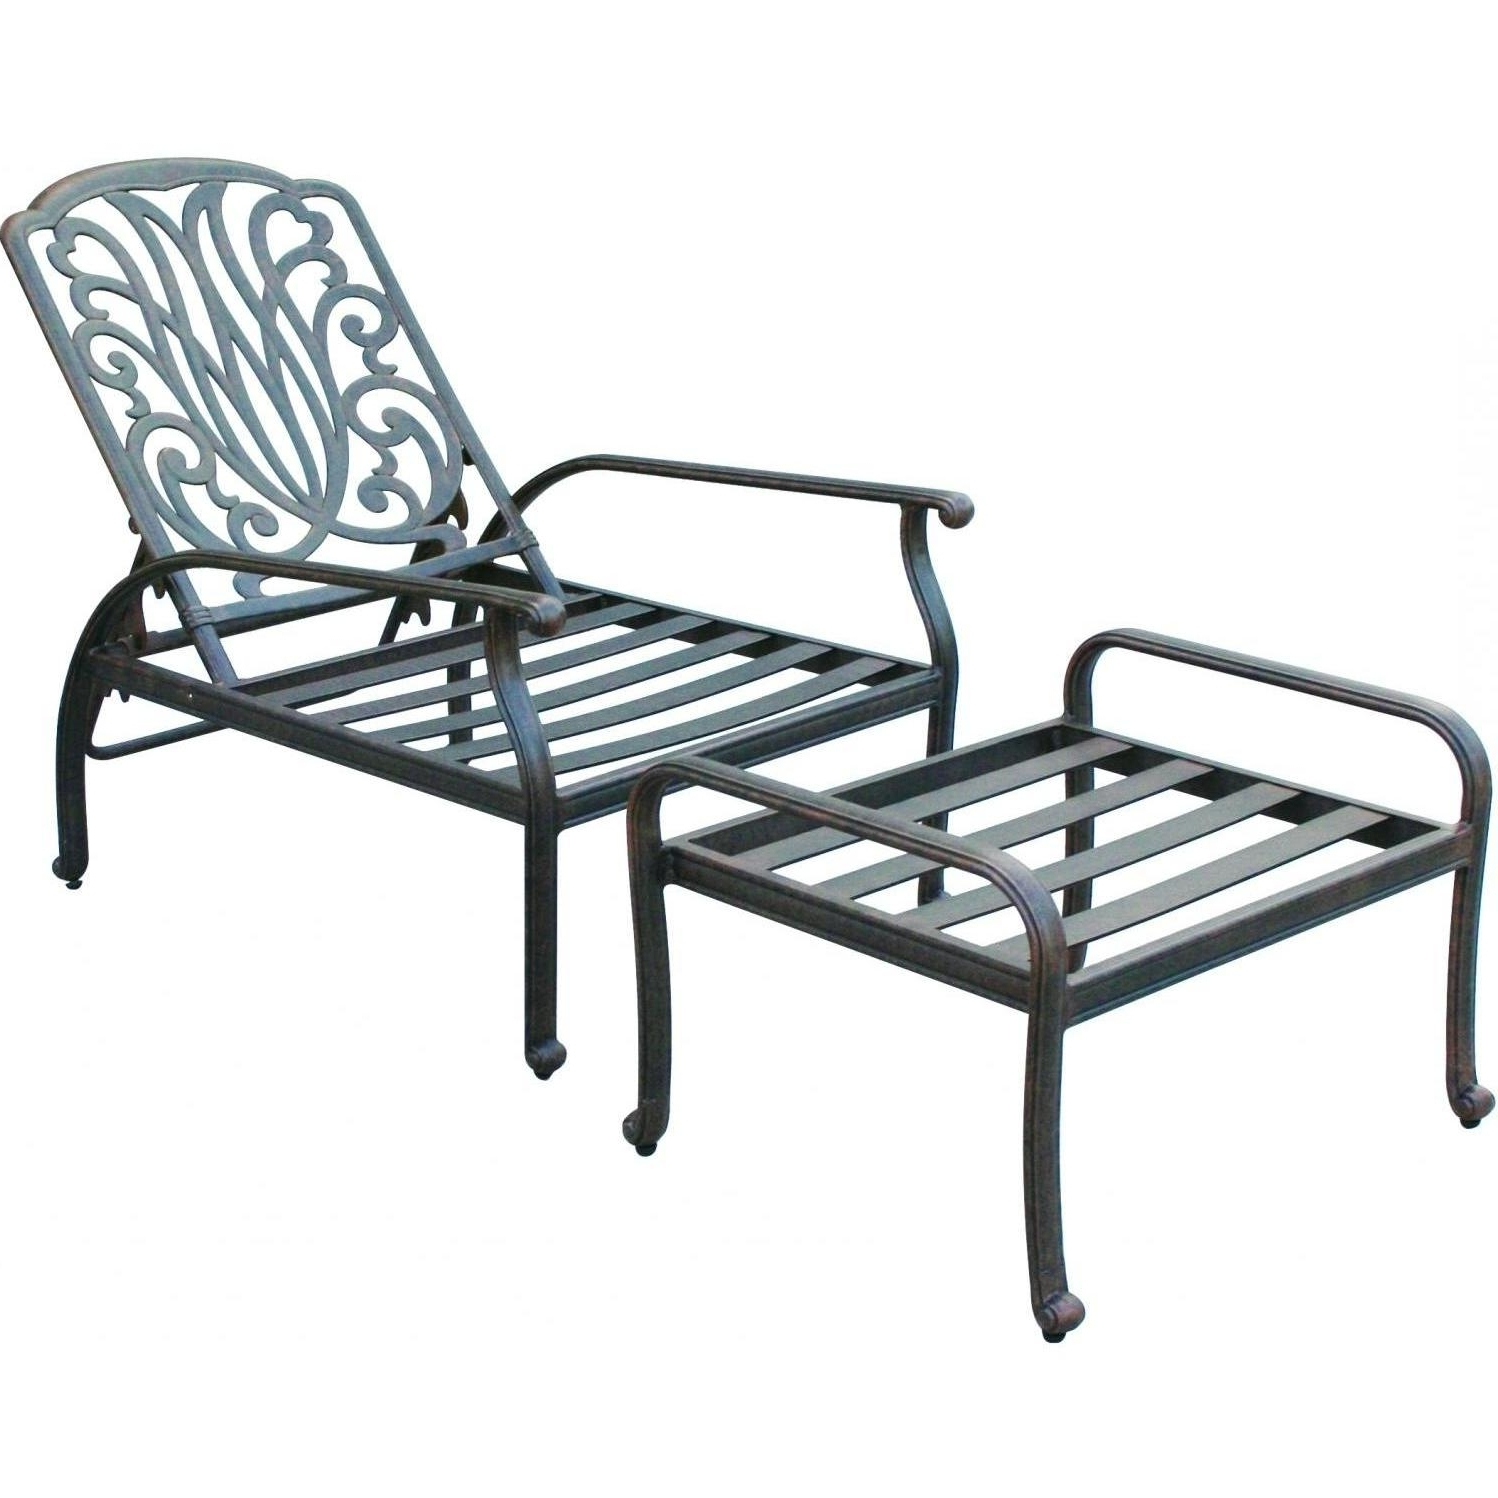 Most Current Convertible Chair : Patio Lounge Chairs On Sale Buy Outdoor Lounge With Portable Outdoor Chaise Lounge Chairs (View 12 of 15)